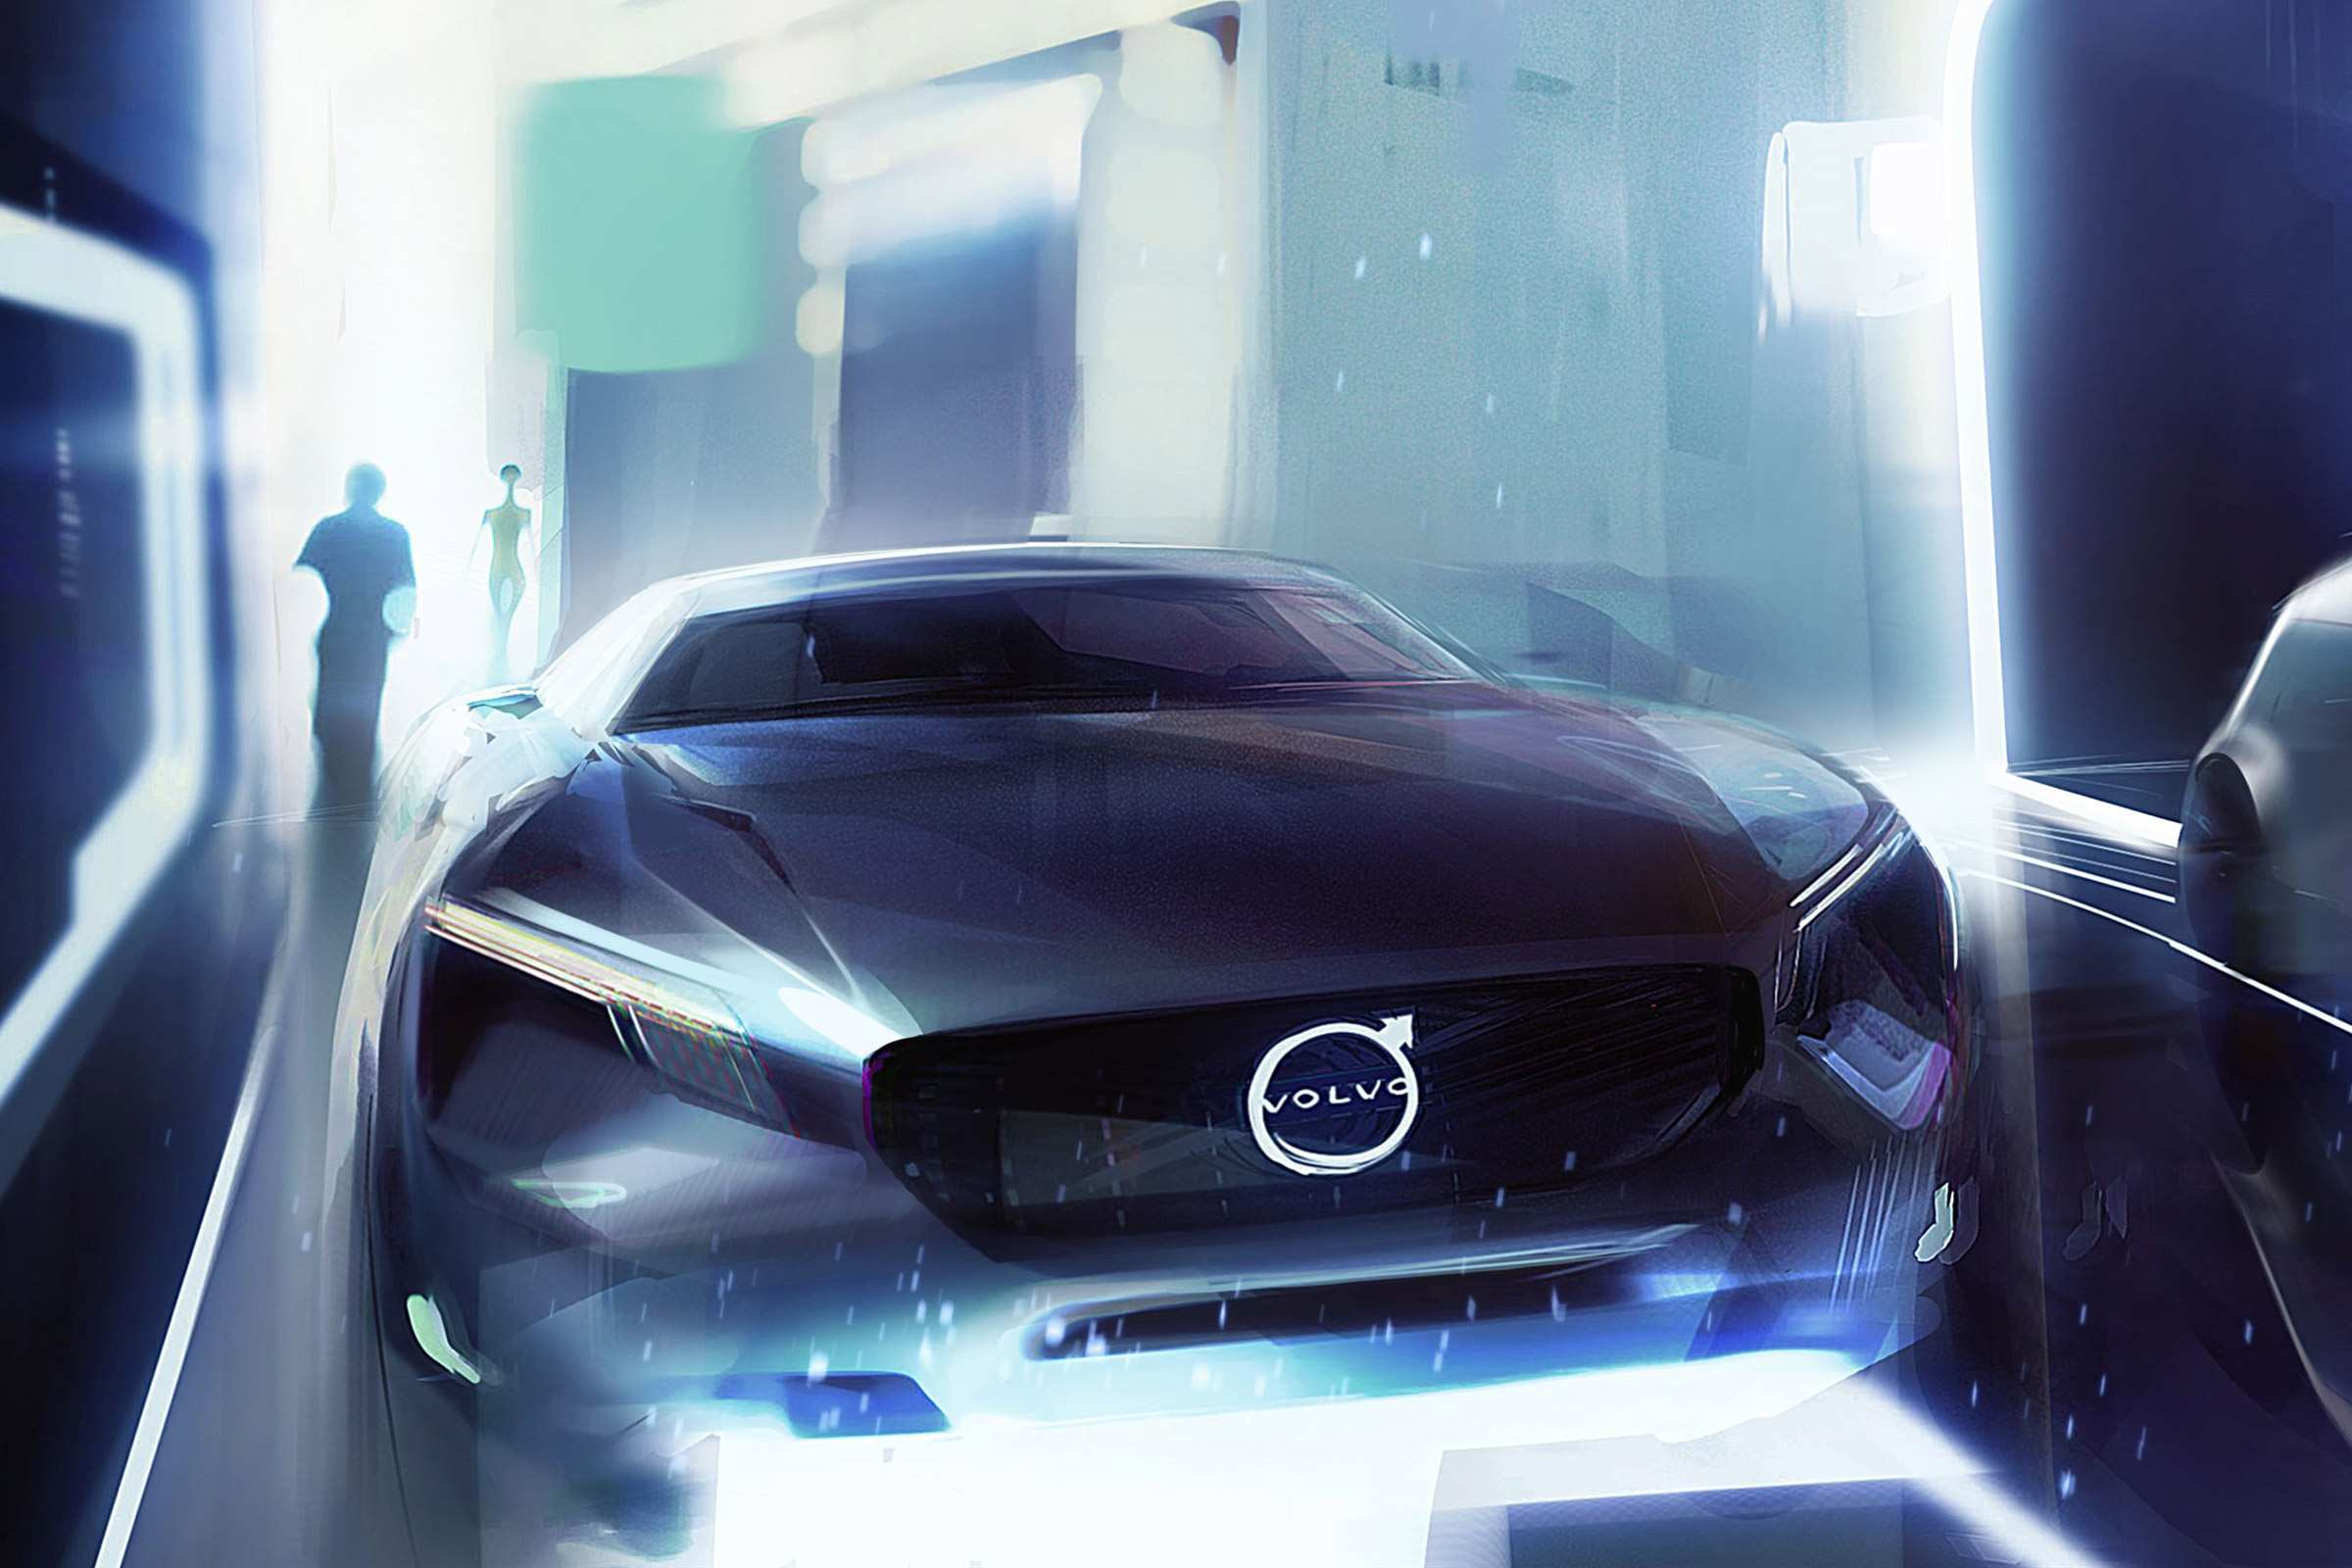 21 New Volvo All Electric Cars By 2019 Specs and Review with Volvo All Electric Cars By 2019